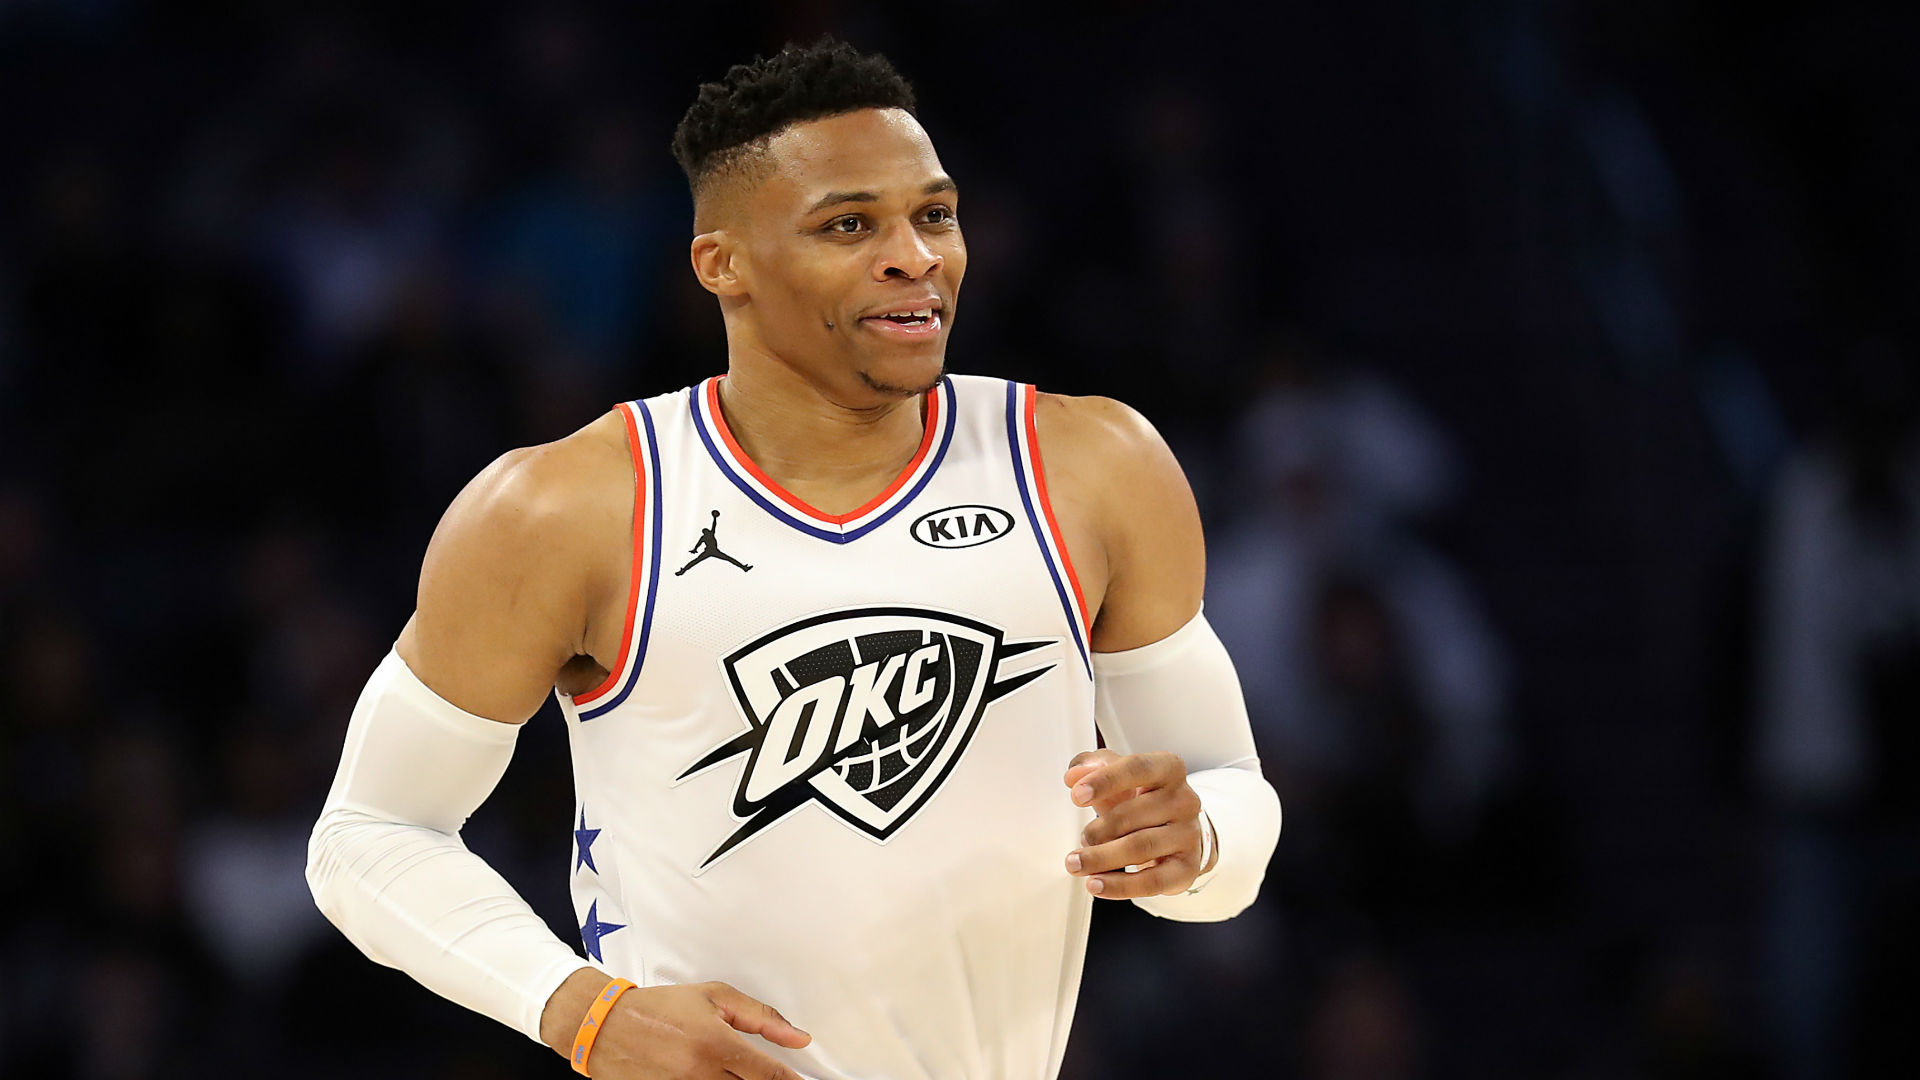 Westbrook's triple-double feat will not be matched, says George